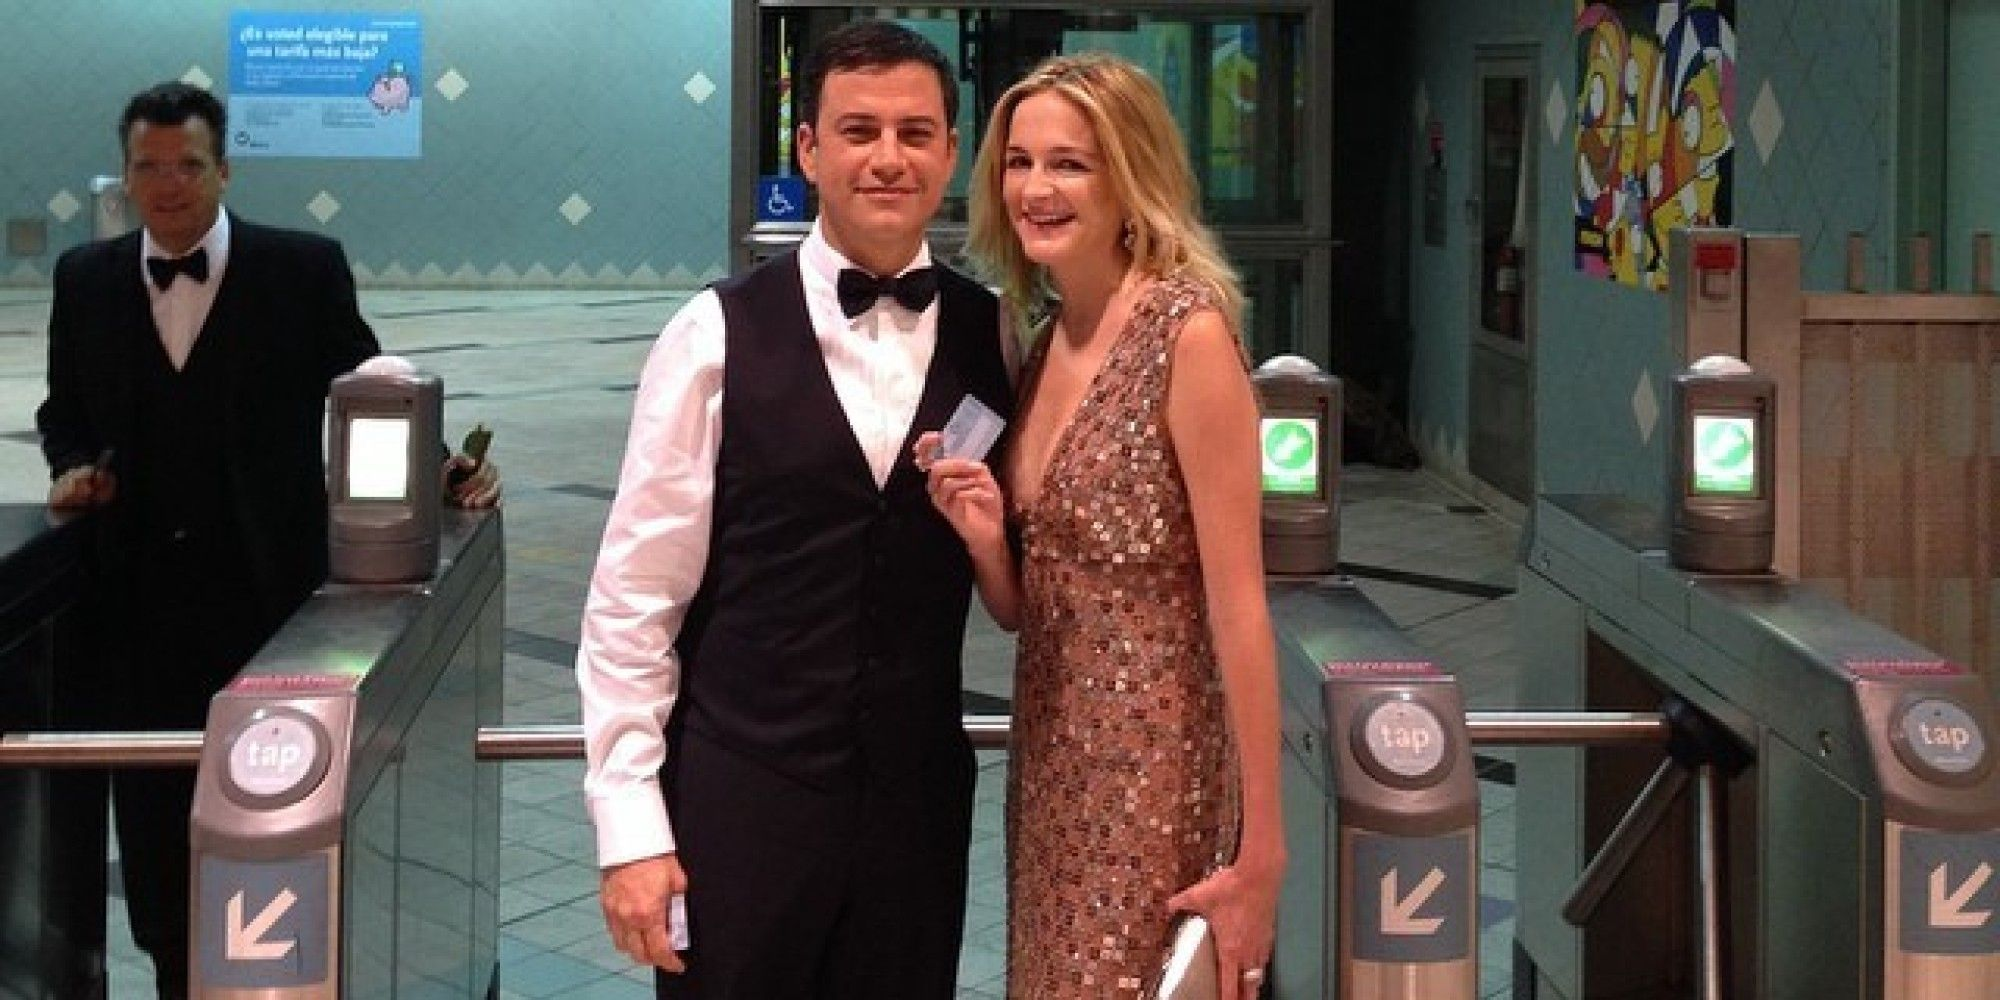 Jimmy Kimmel rode the LA metro rail to the Nokia Theater for the Emmys!